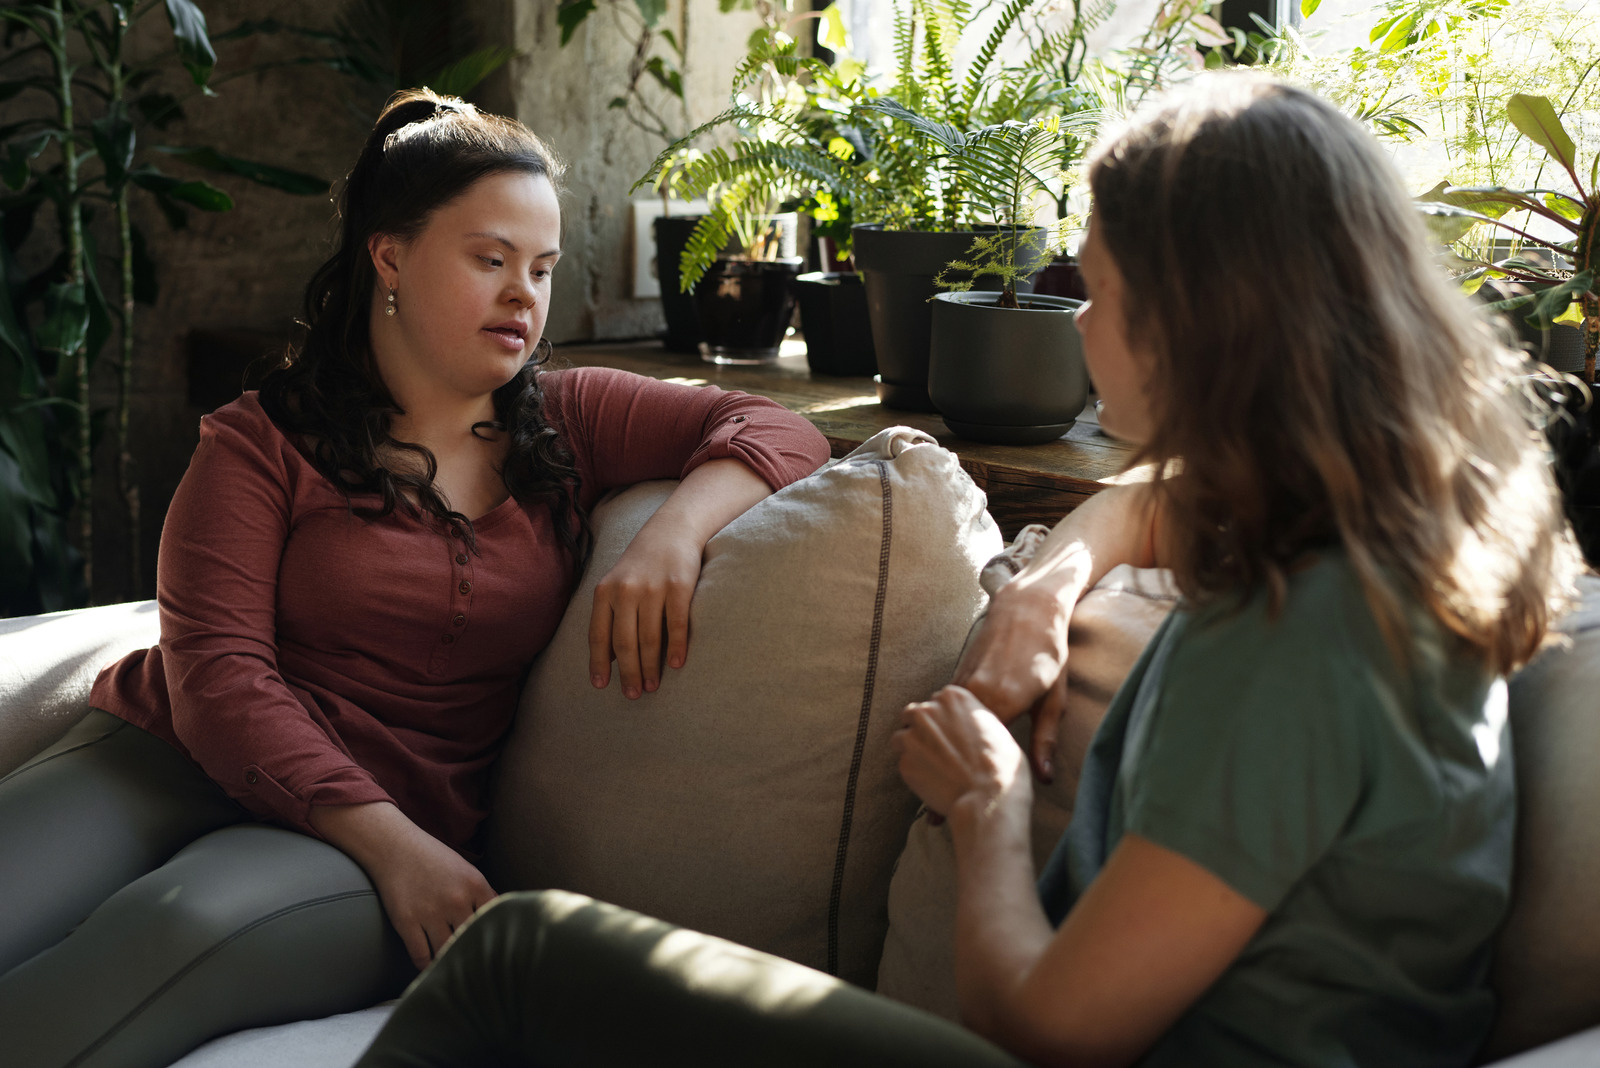 Two women face each other on a sofa talking